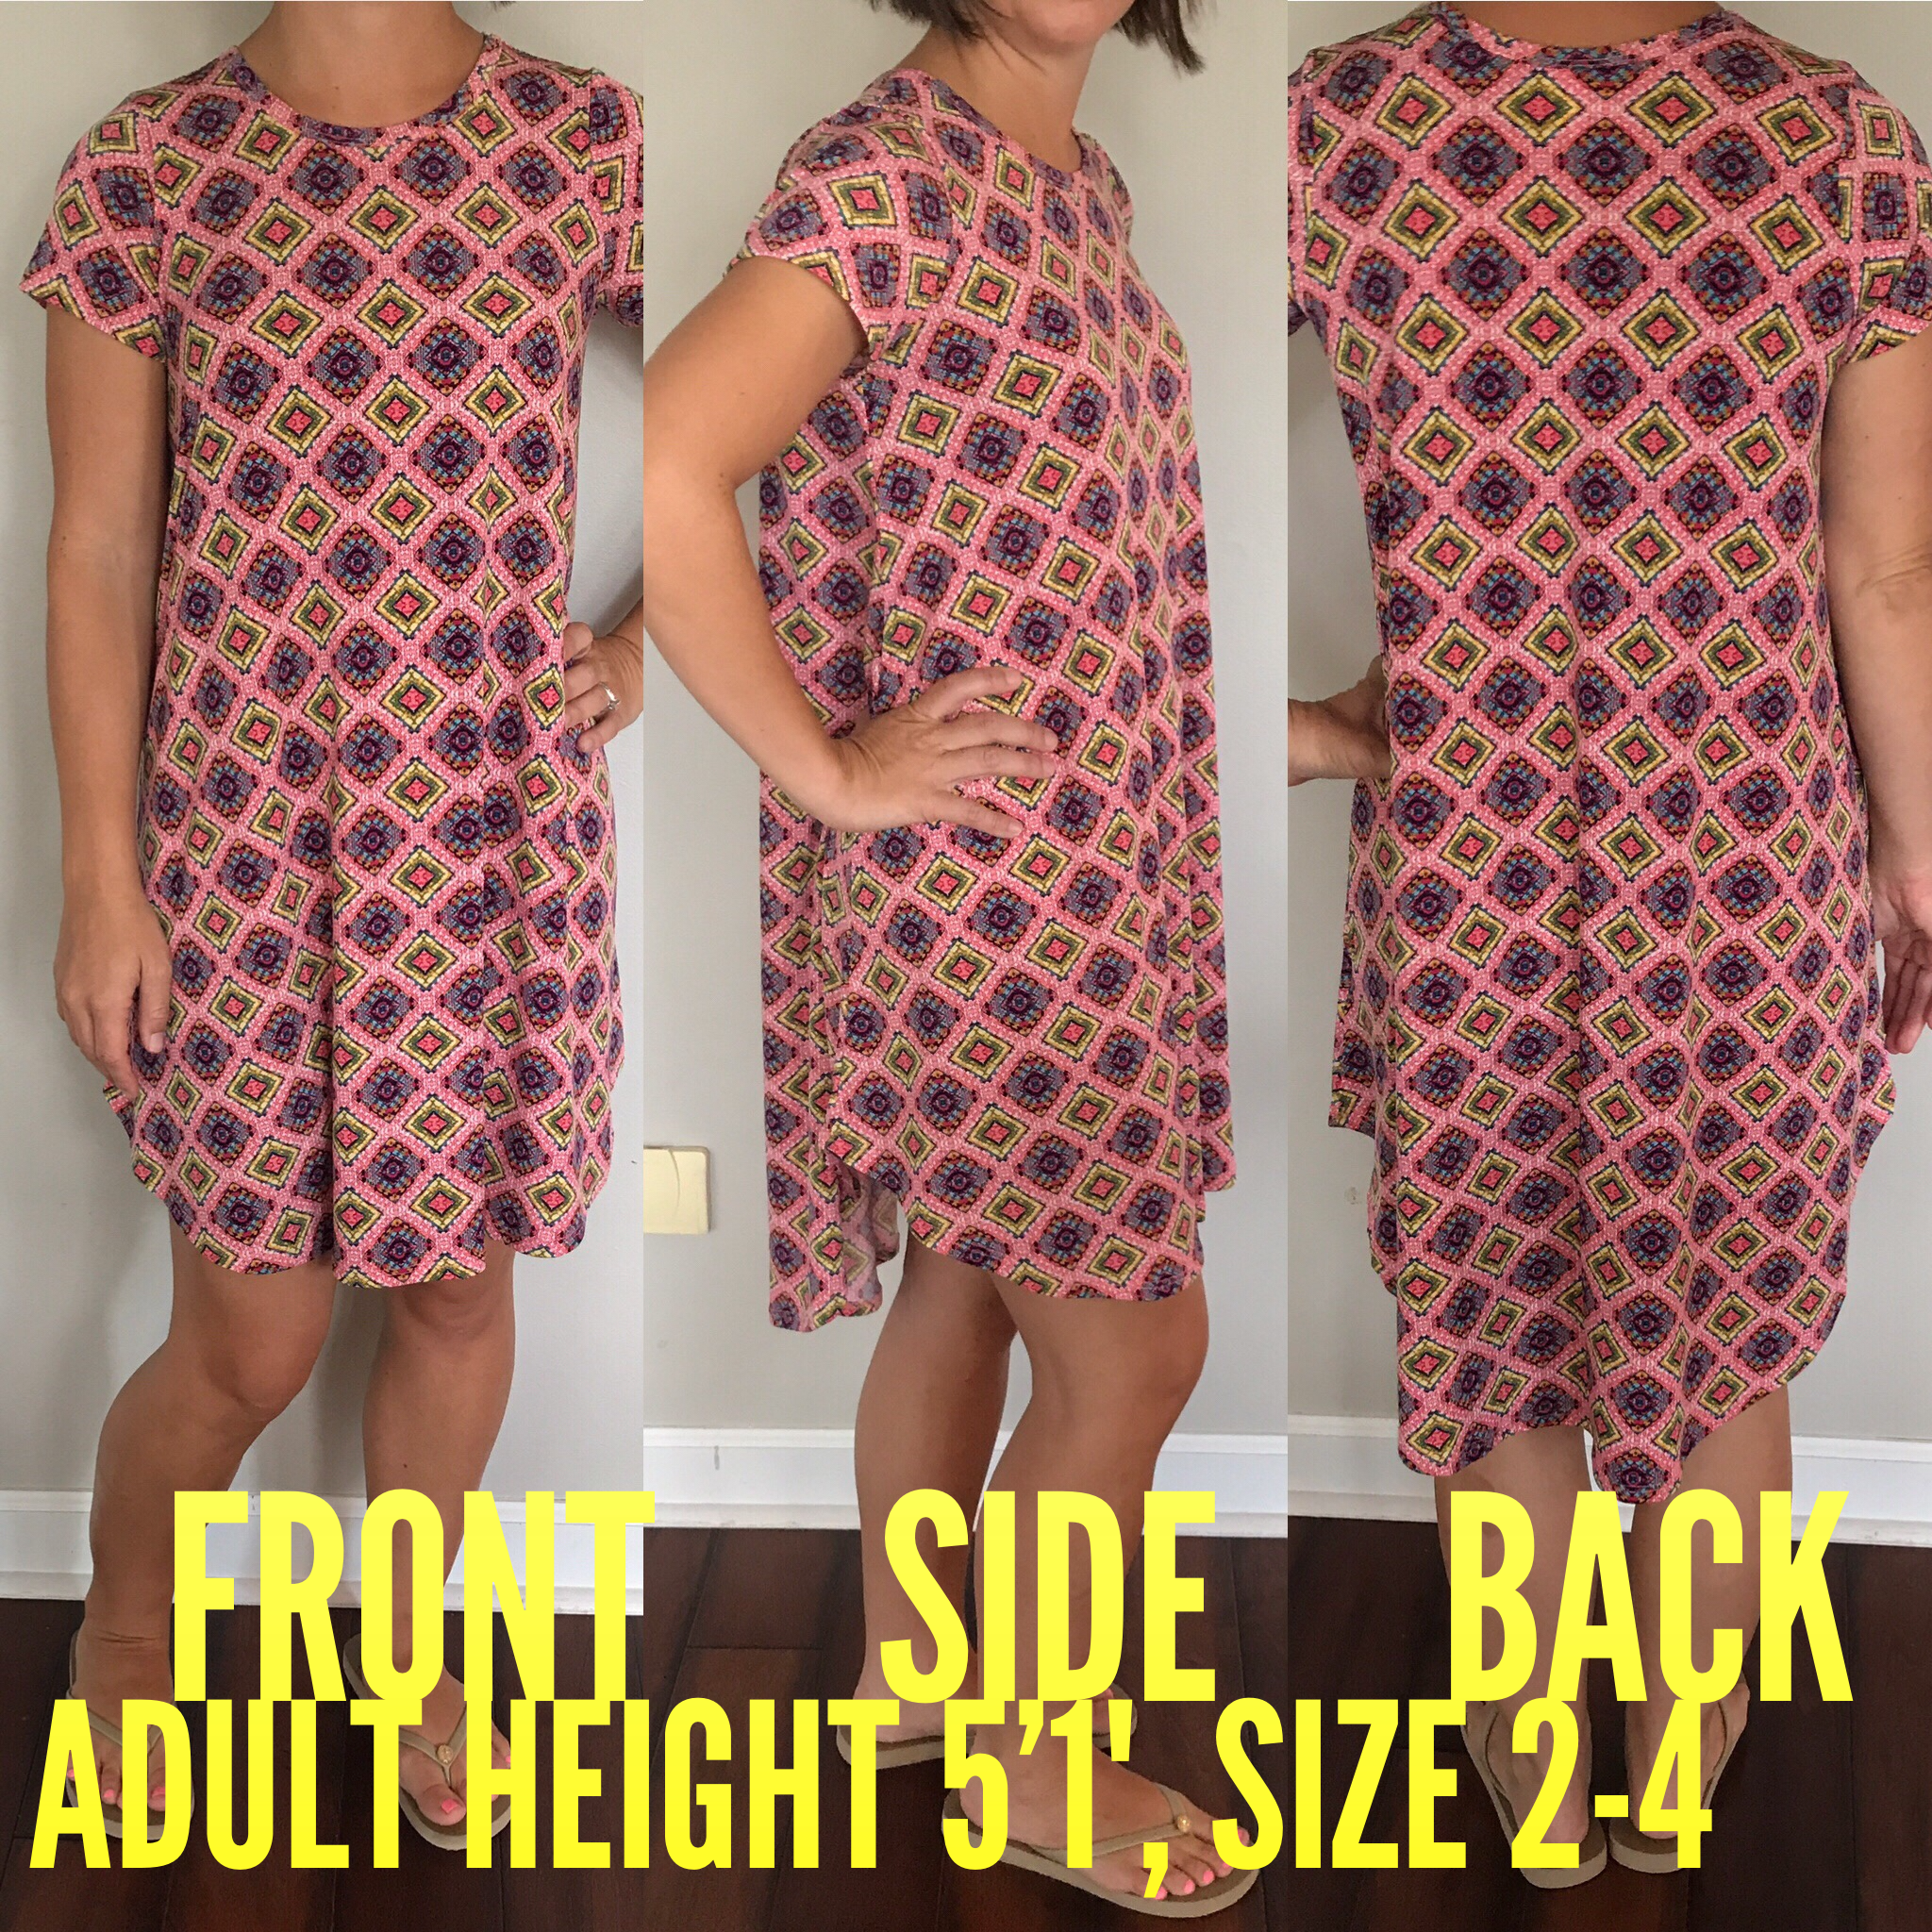 796852c48 The LuLaRoe Scarlett dress in size 12 is perfect for short, petite ladies  Many taller ladies can wear it as a tunic